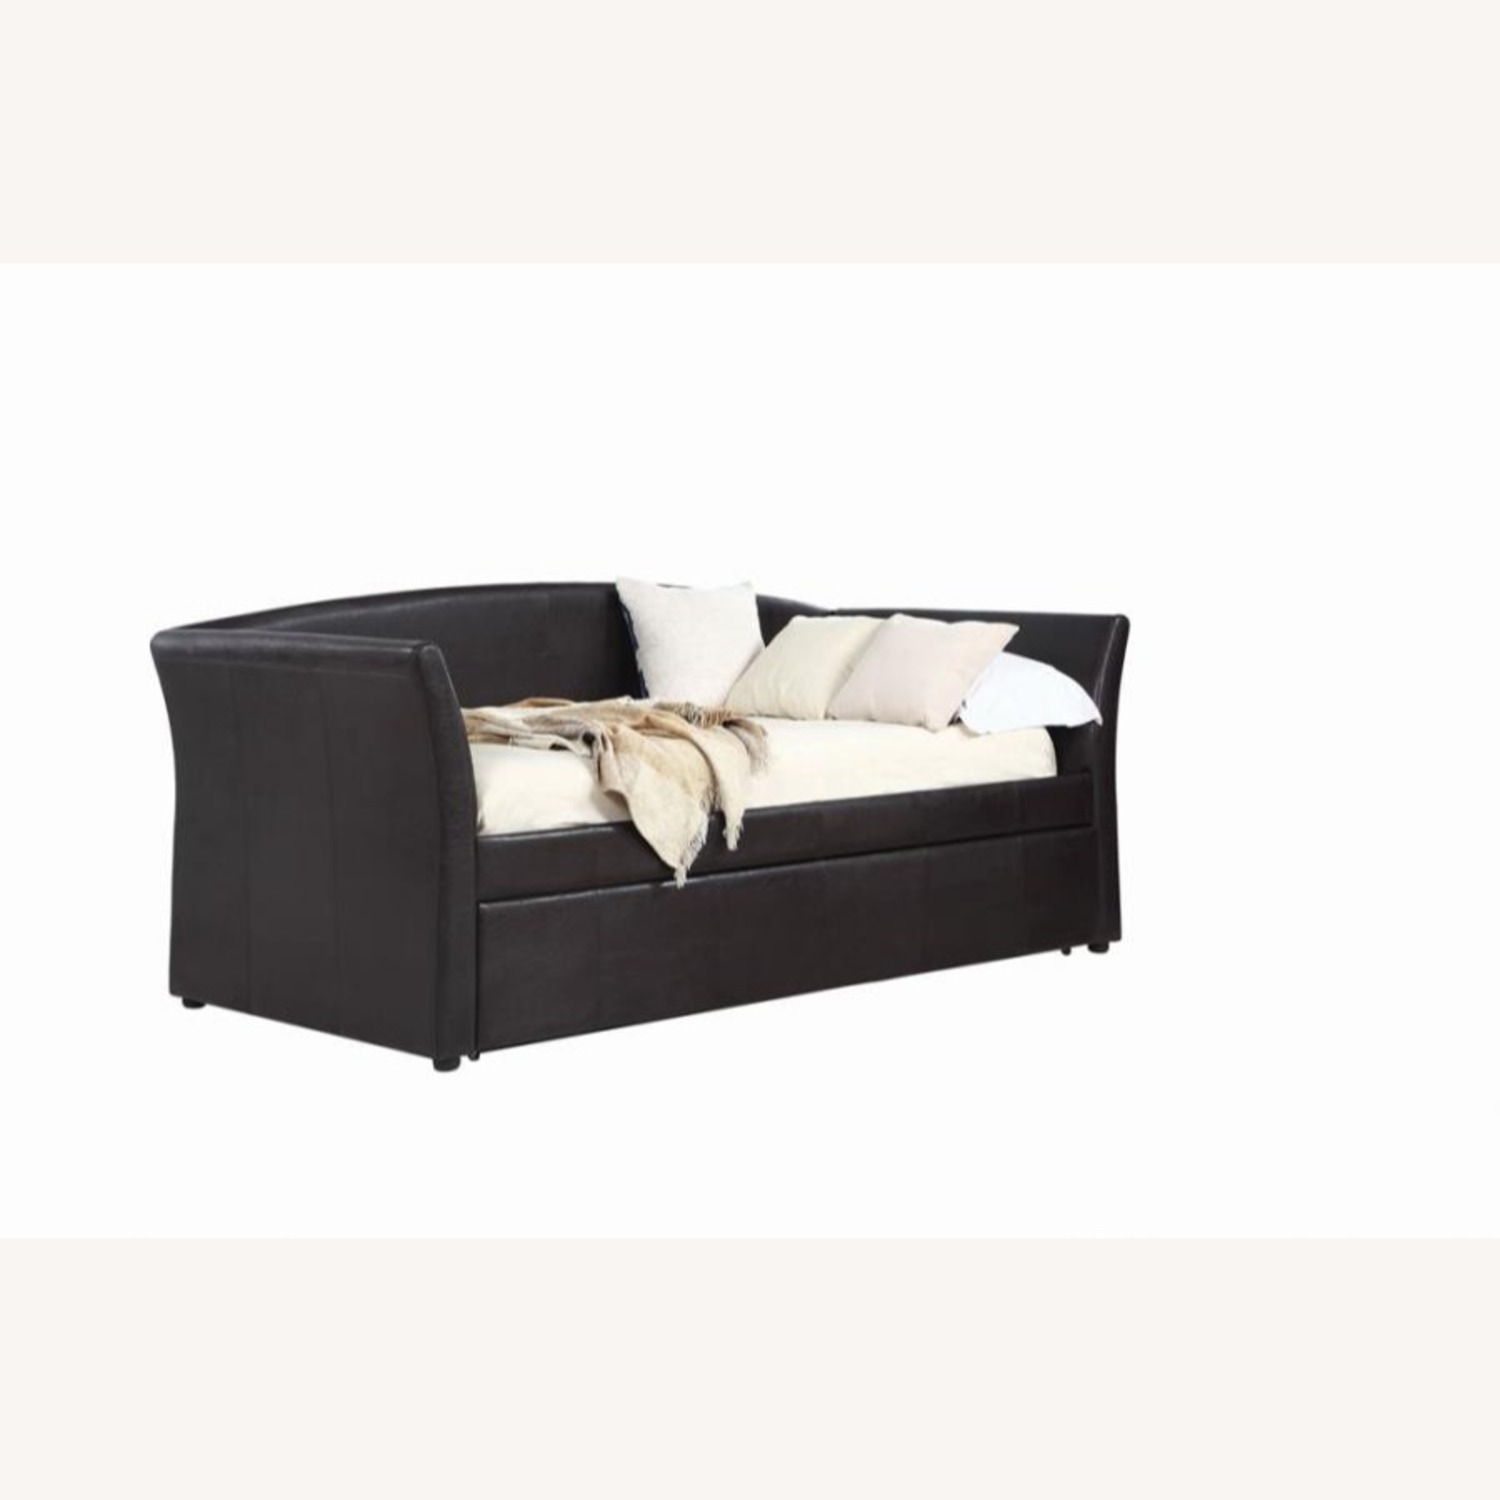 Twin Daybed In Dark Brown Leatherette Upholstery - image-0